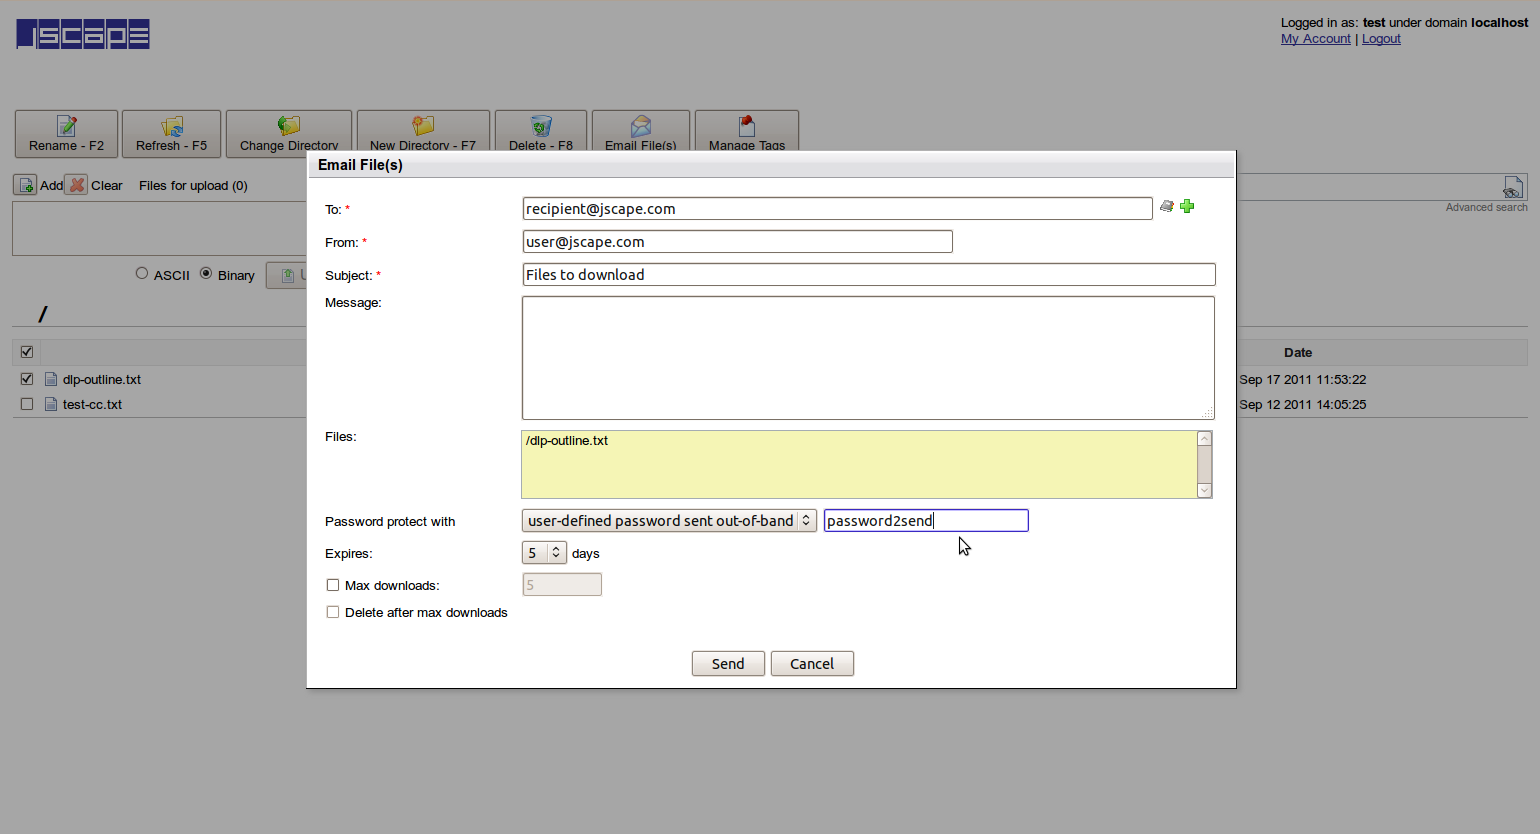 adhoc file transfer password out-of-band